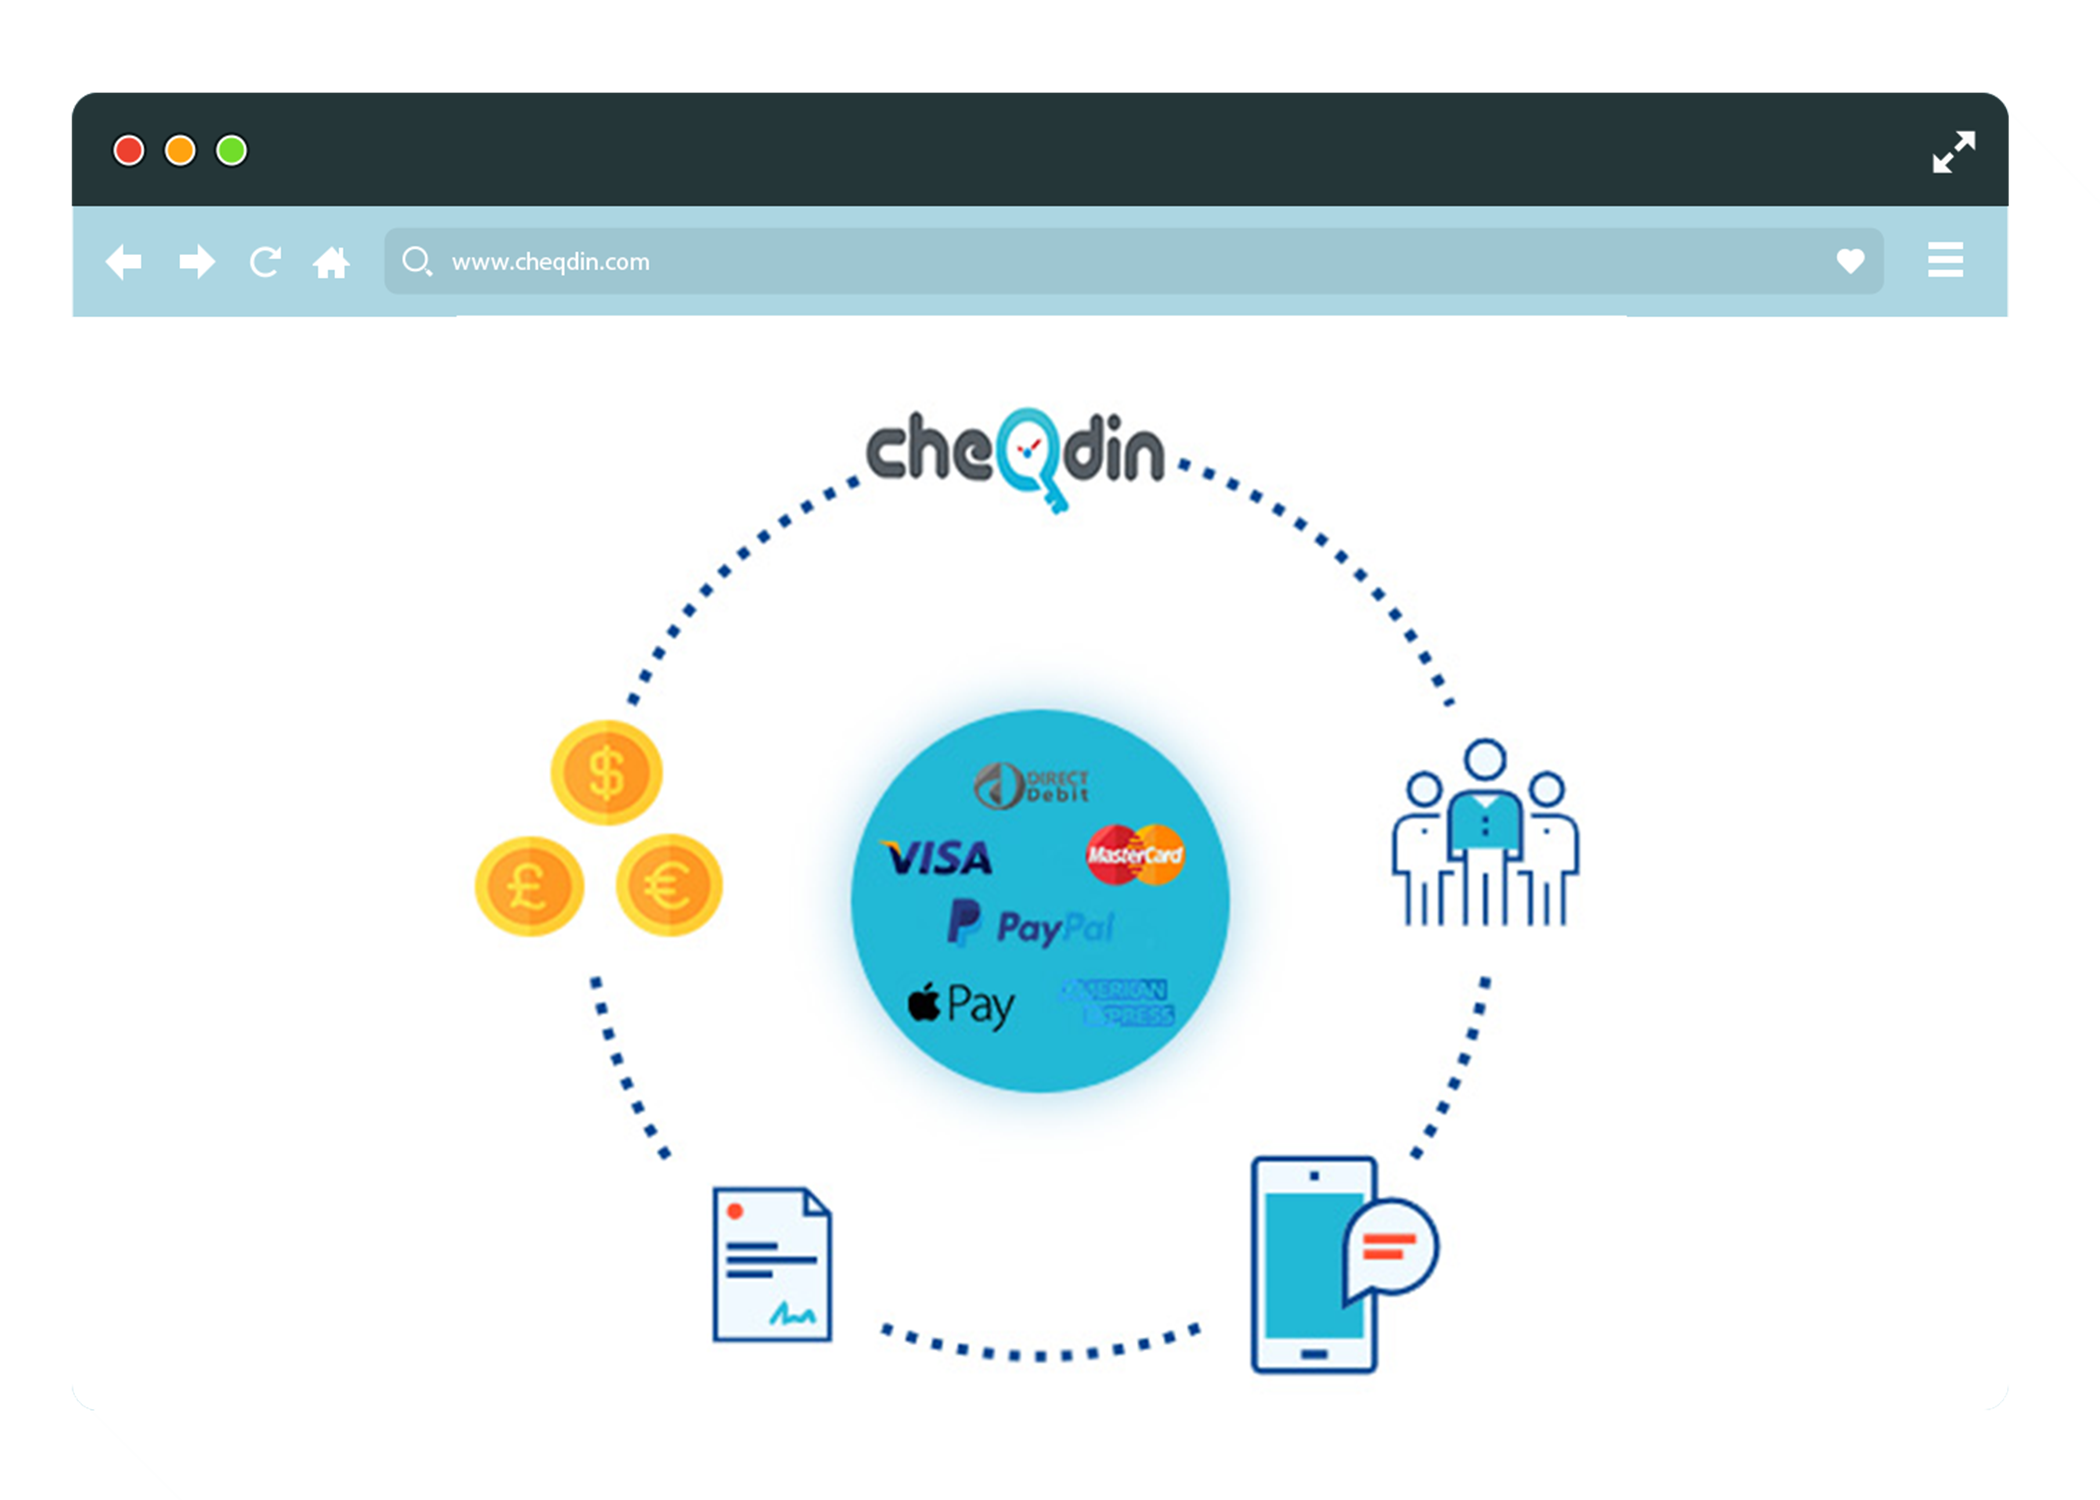 automating payment collection with Cheqdin